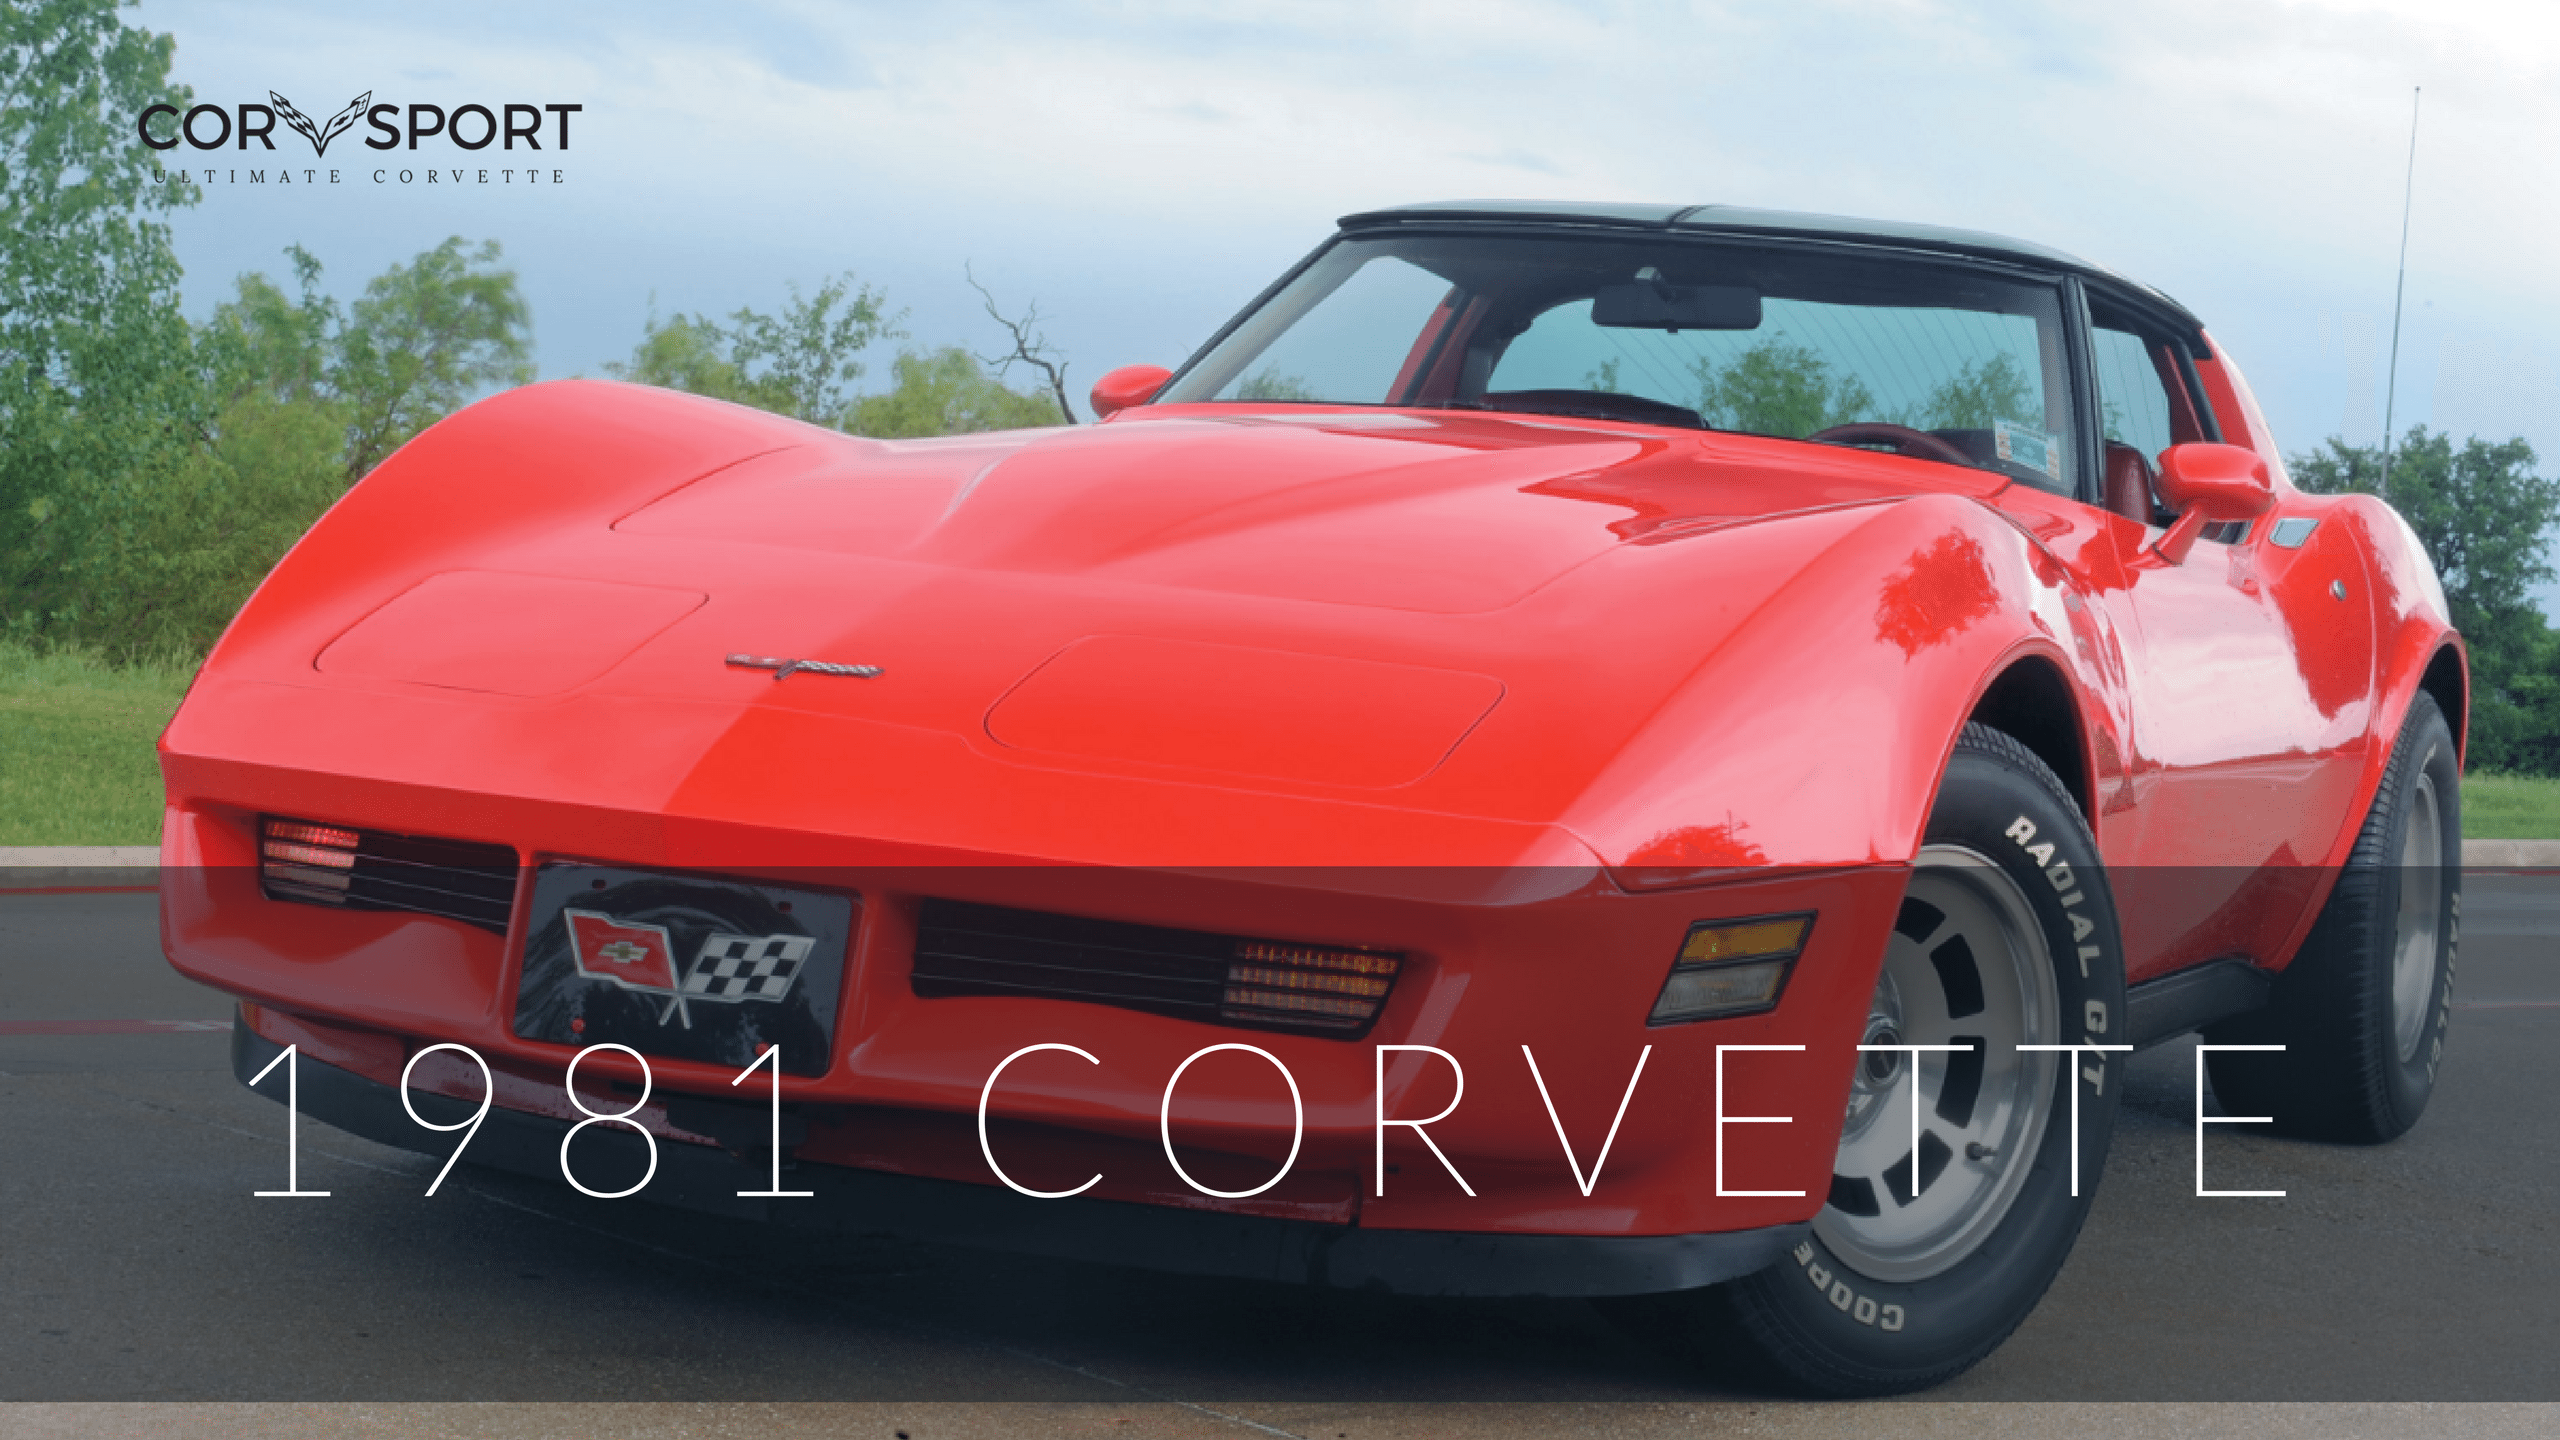 1981 C3 Corvette | Ultimate Guide (Overview, Specs, VIN Info